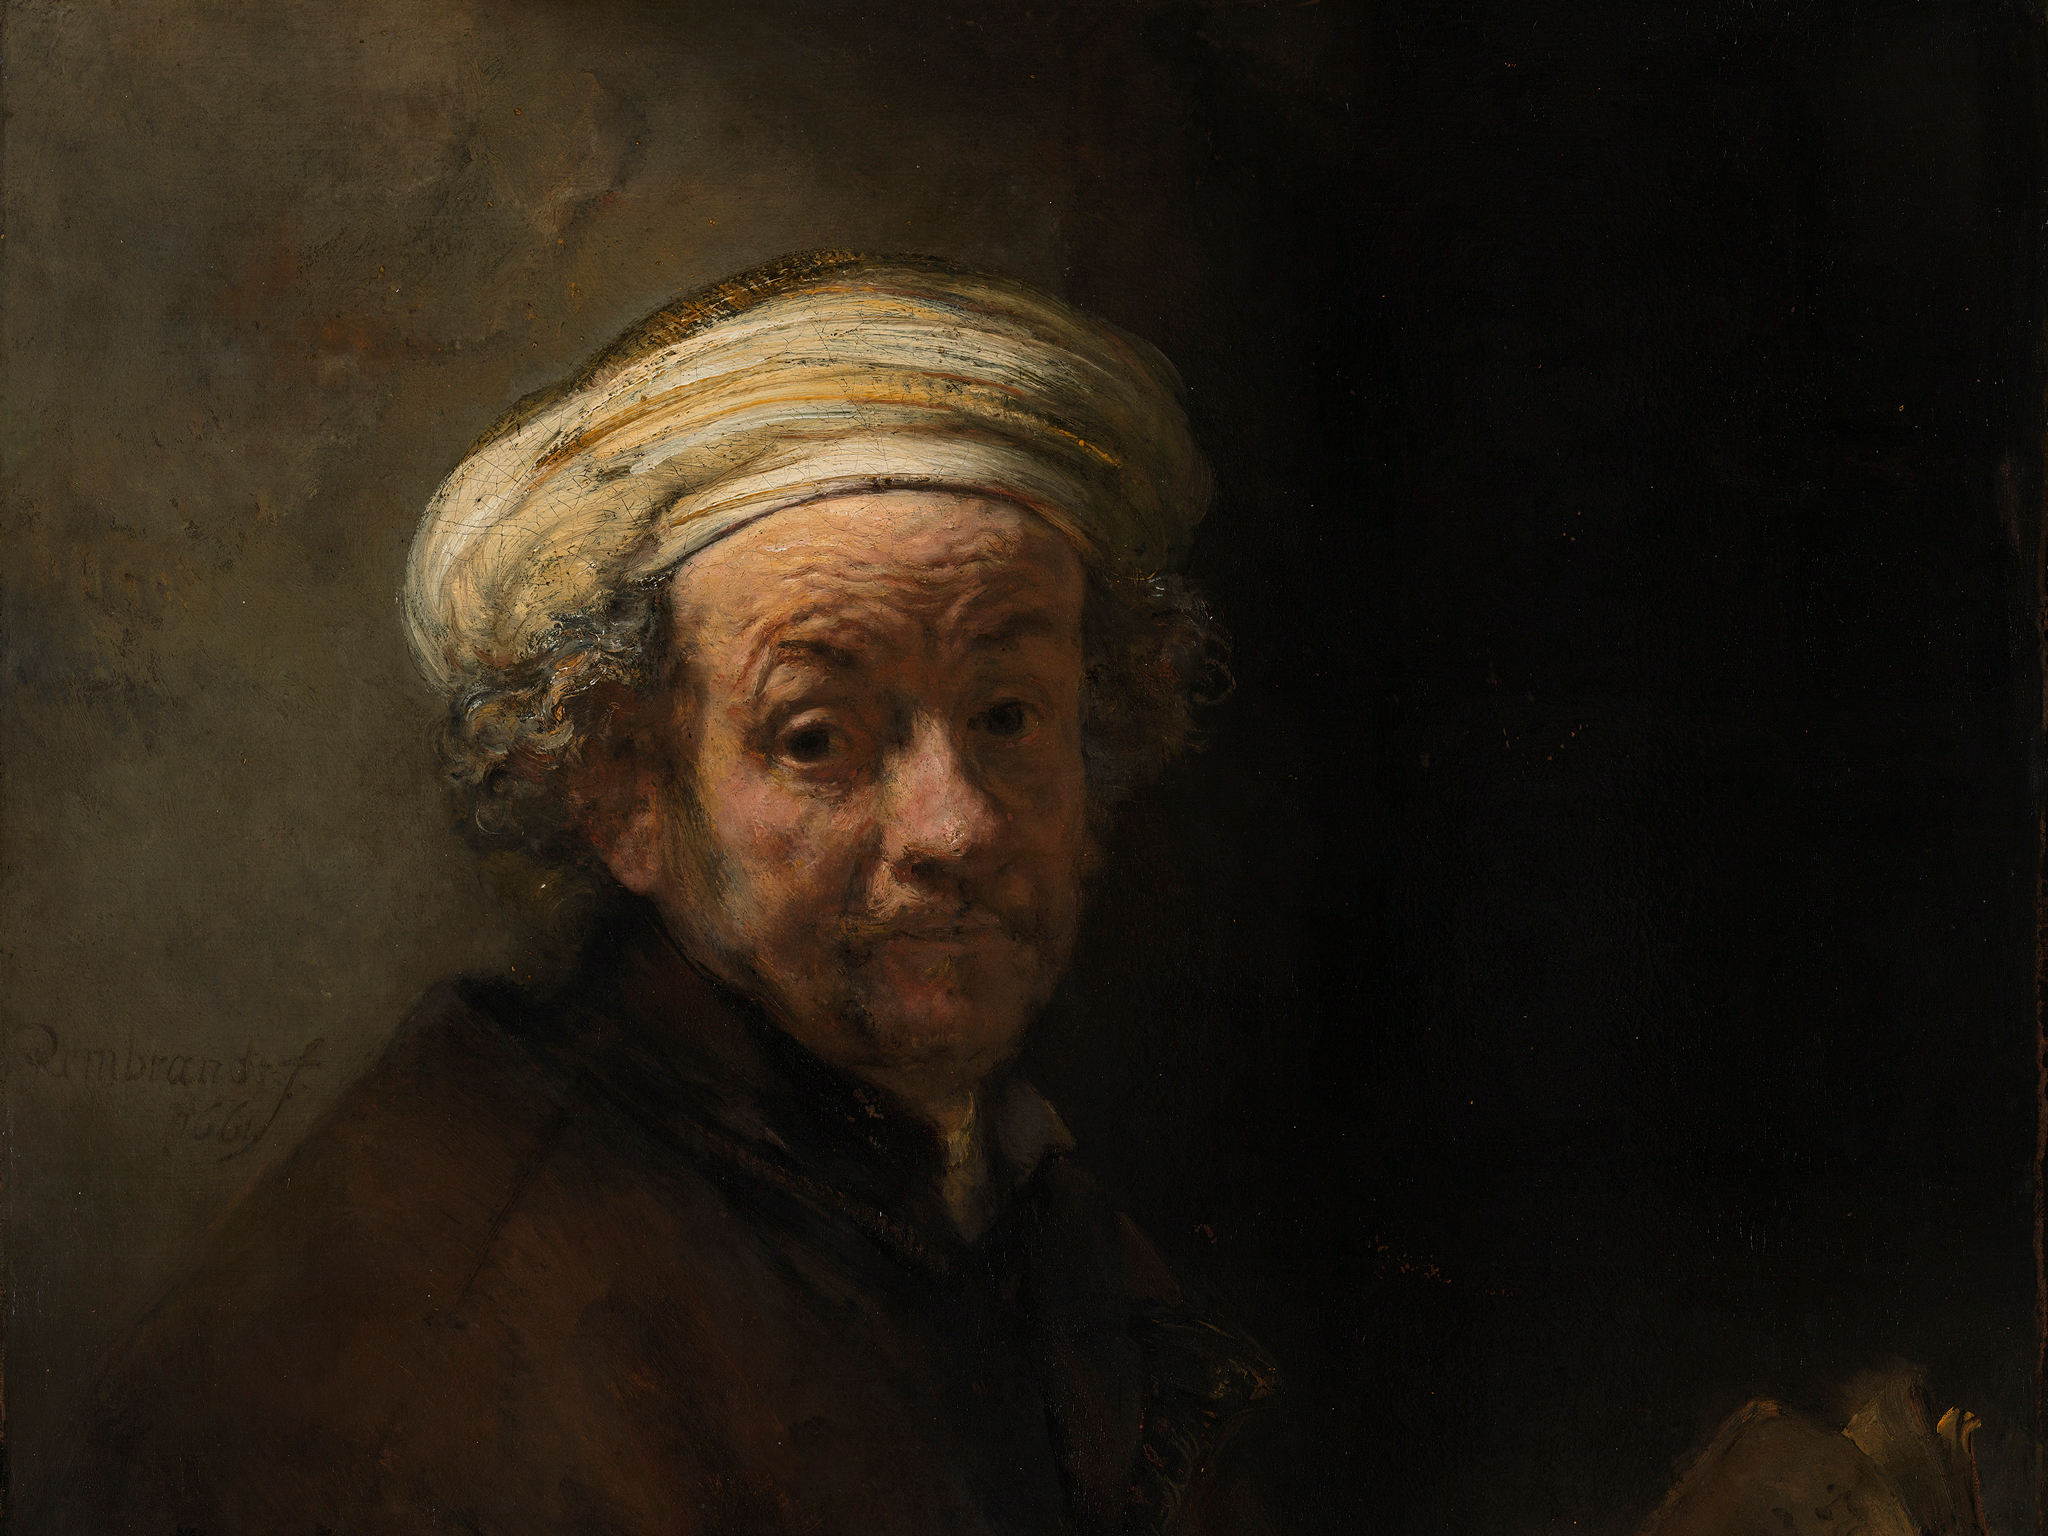 Rembrandt is coming to Sydney in summer